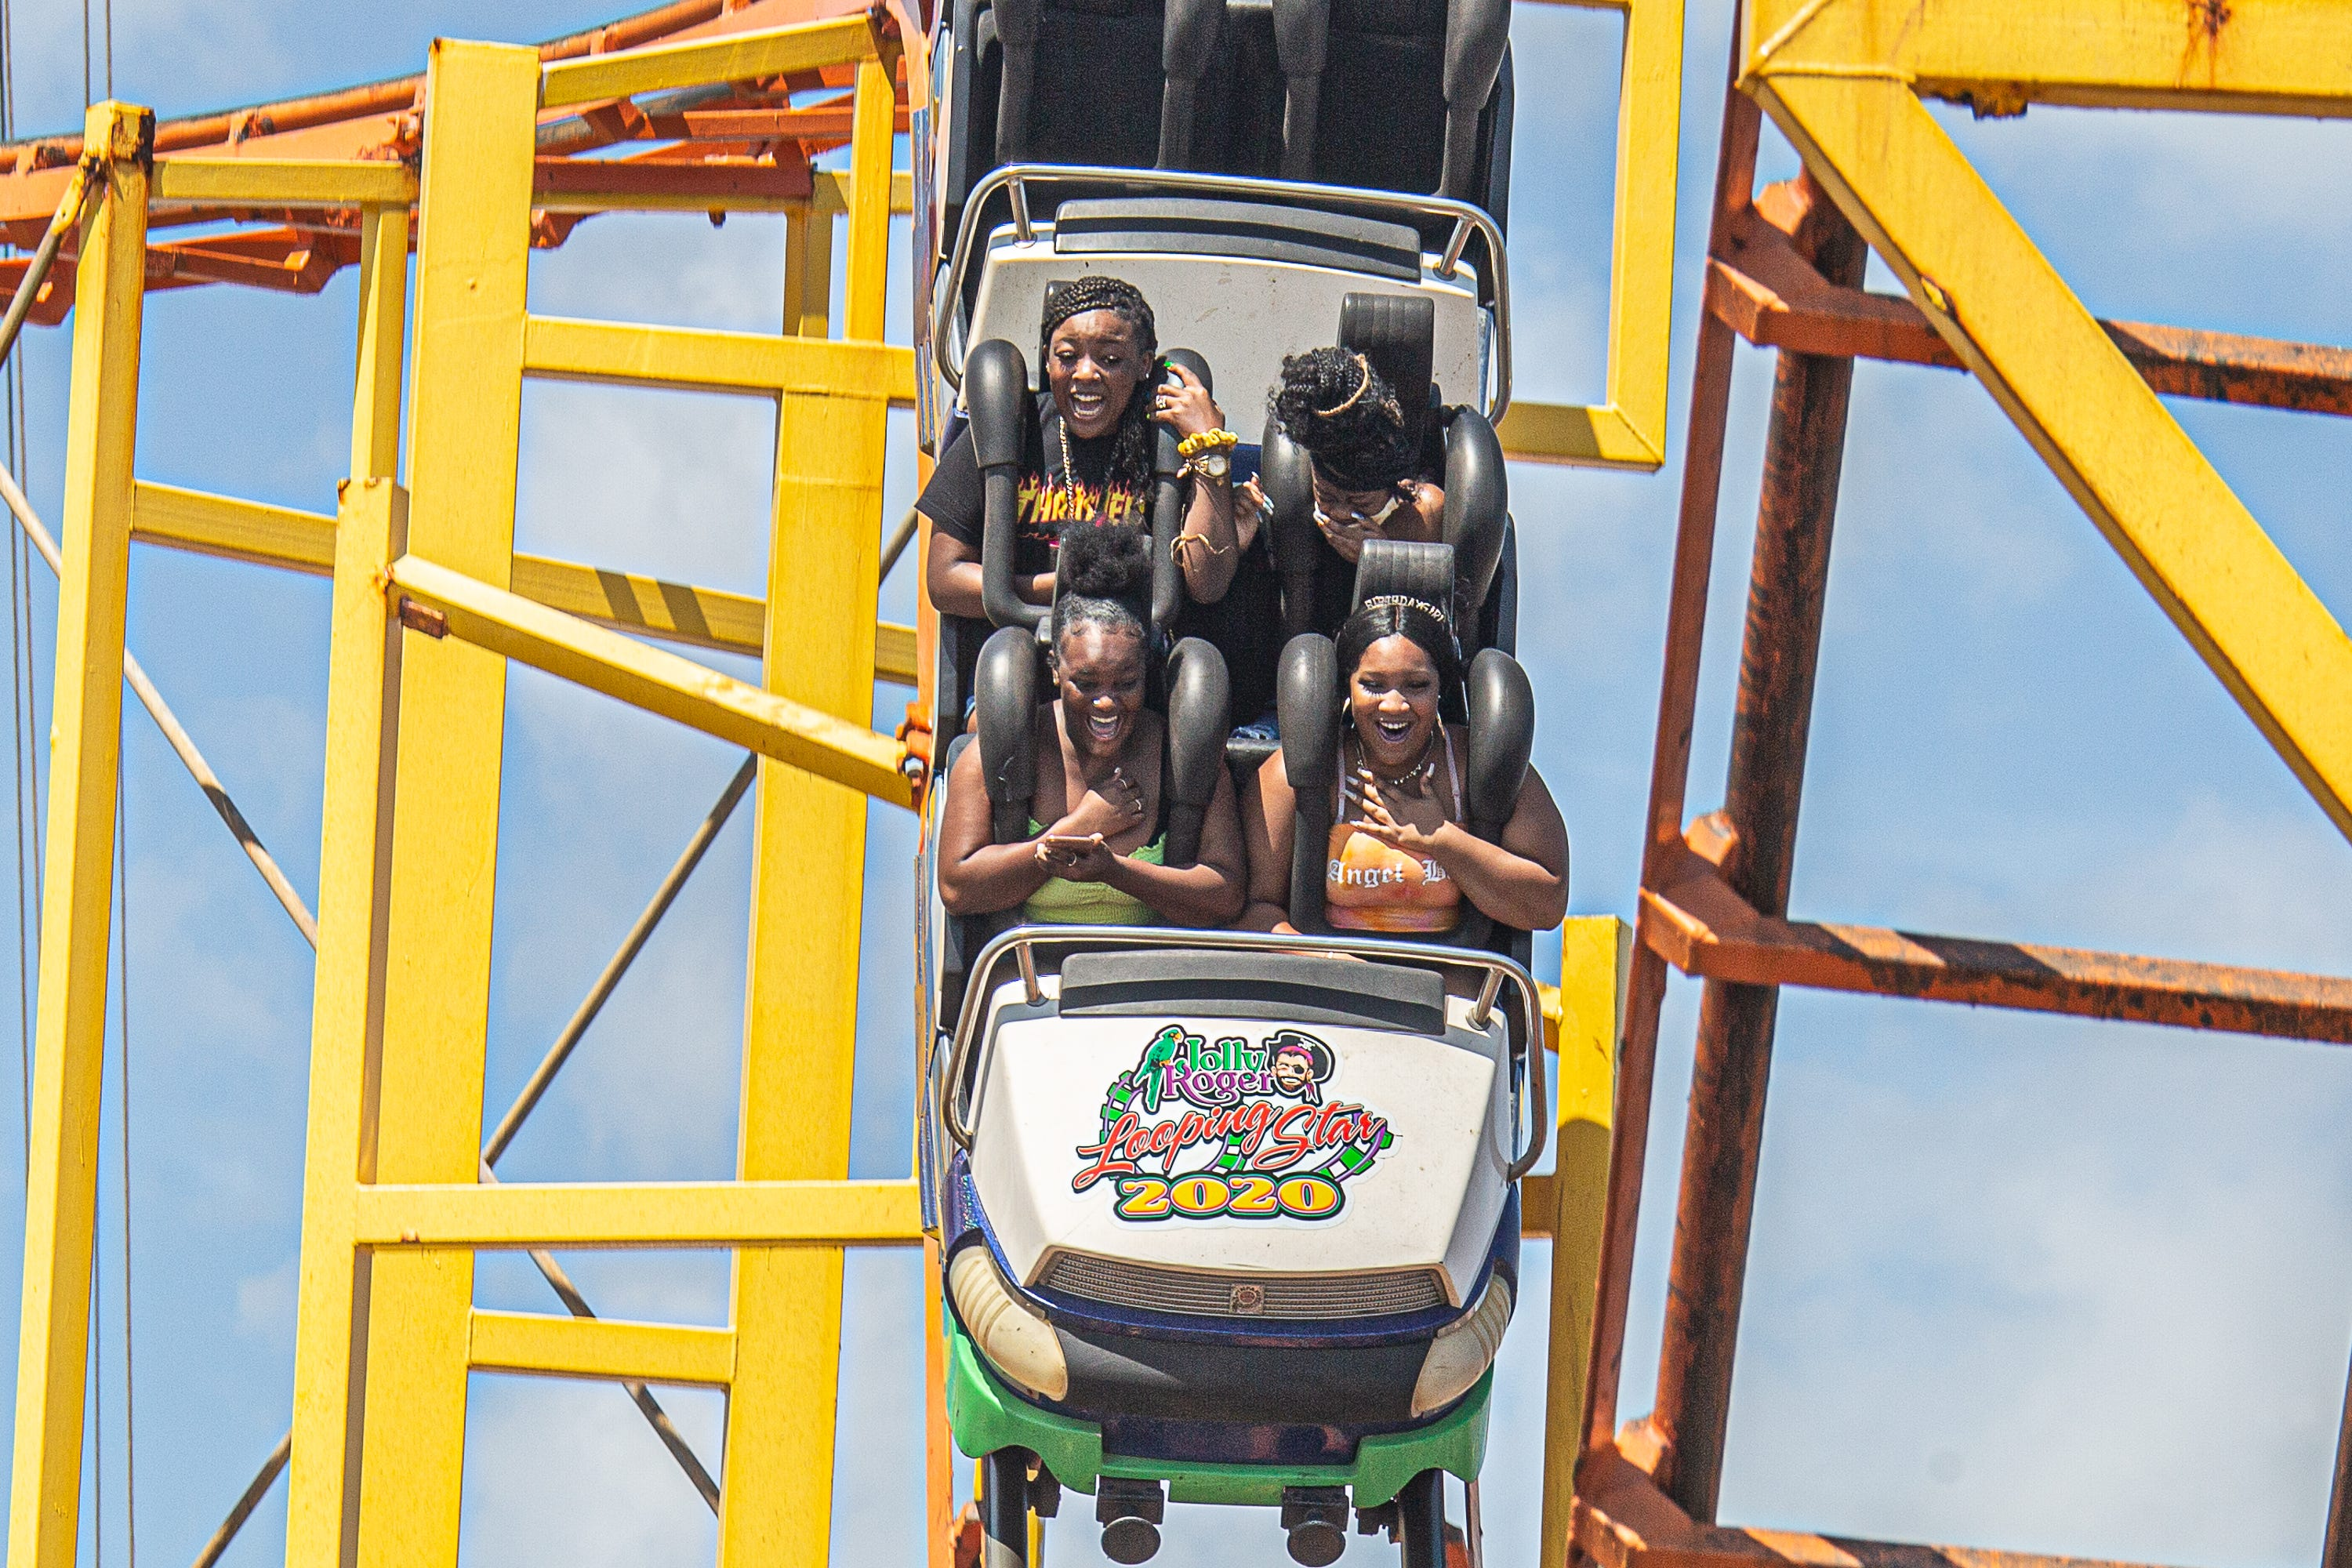 Thousands flocked to Ocean City to enjoy Labor Day weekend on the beach and boardwalk. Visitors have fun at Jolly Roger pier rides on Saturday, Sept. 5, 2020.